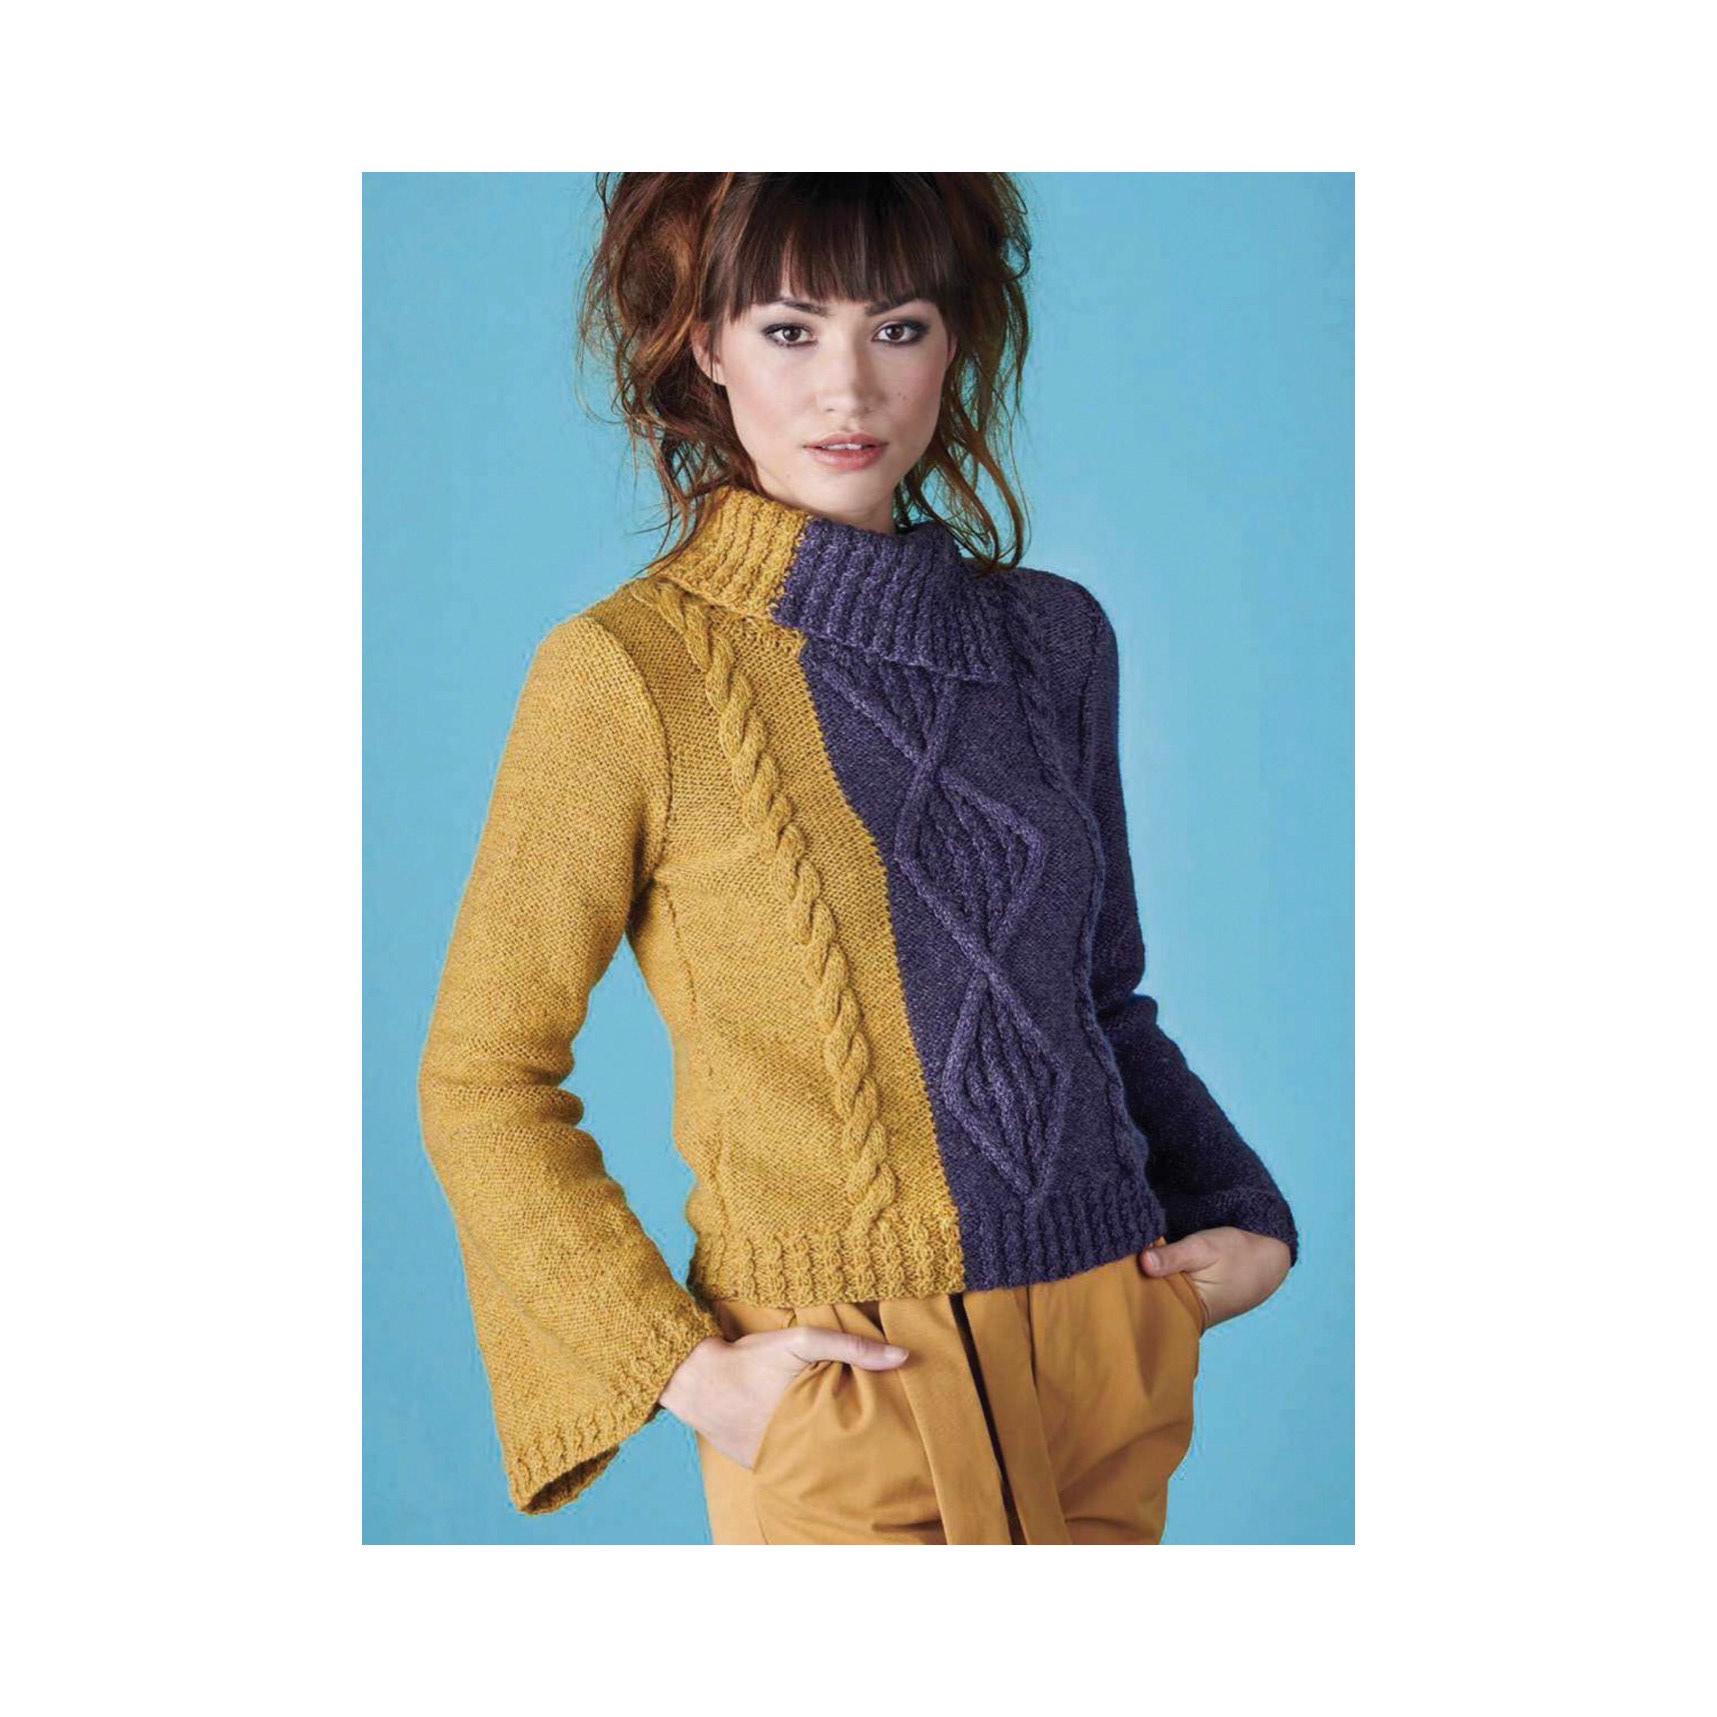 Photo of a woman wearing a knitted jumper with vertical bold cables. The jumper is purple for one sleeve and most of the body, and mustard yellow for the rest.